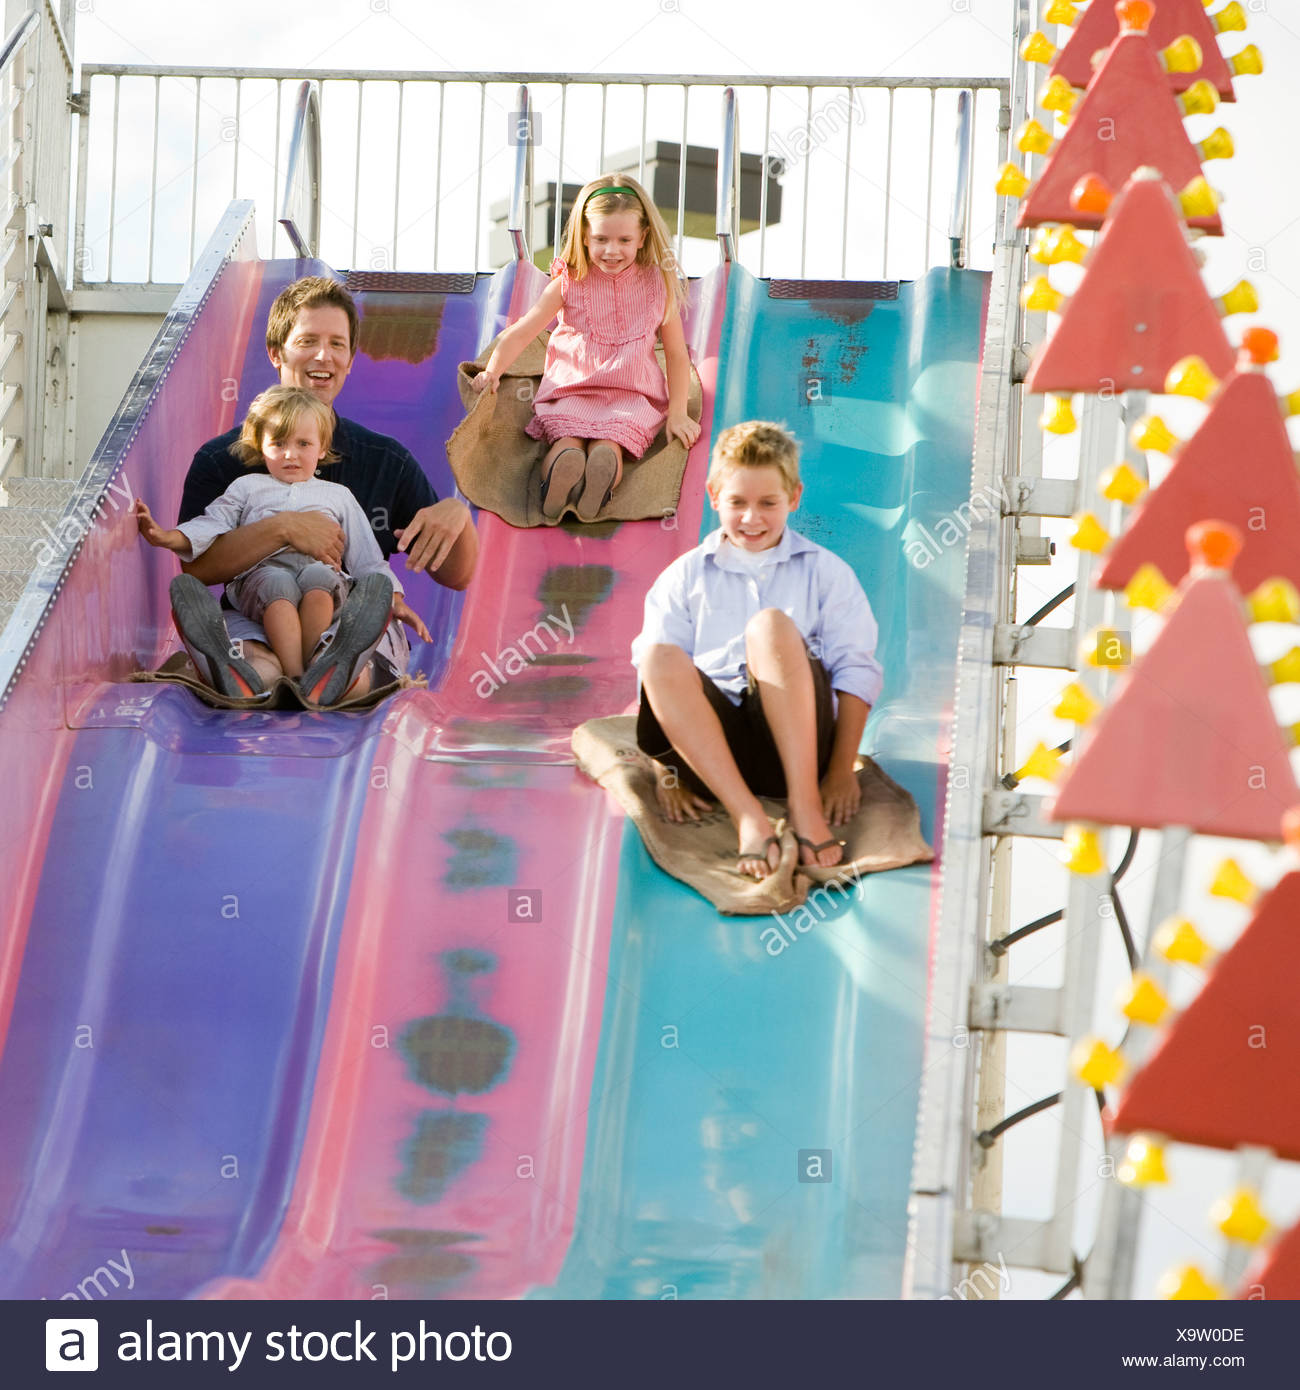 family at the carnival riding on the fun slide together - Stock Image